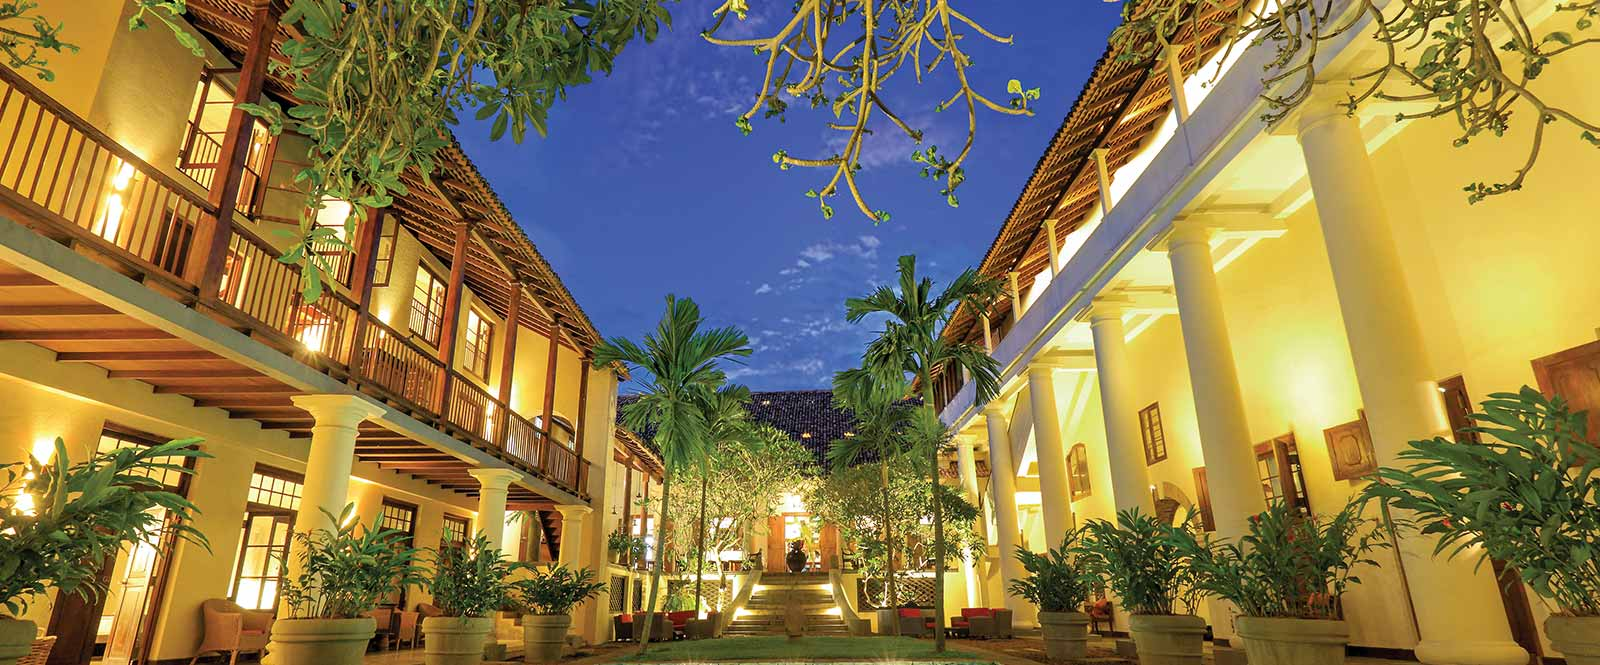 Evening View of a Hotel in Galle